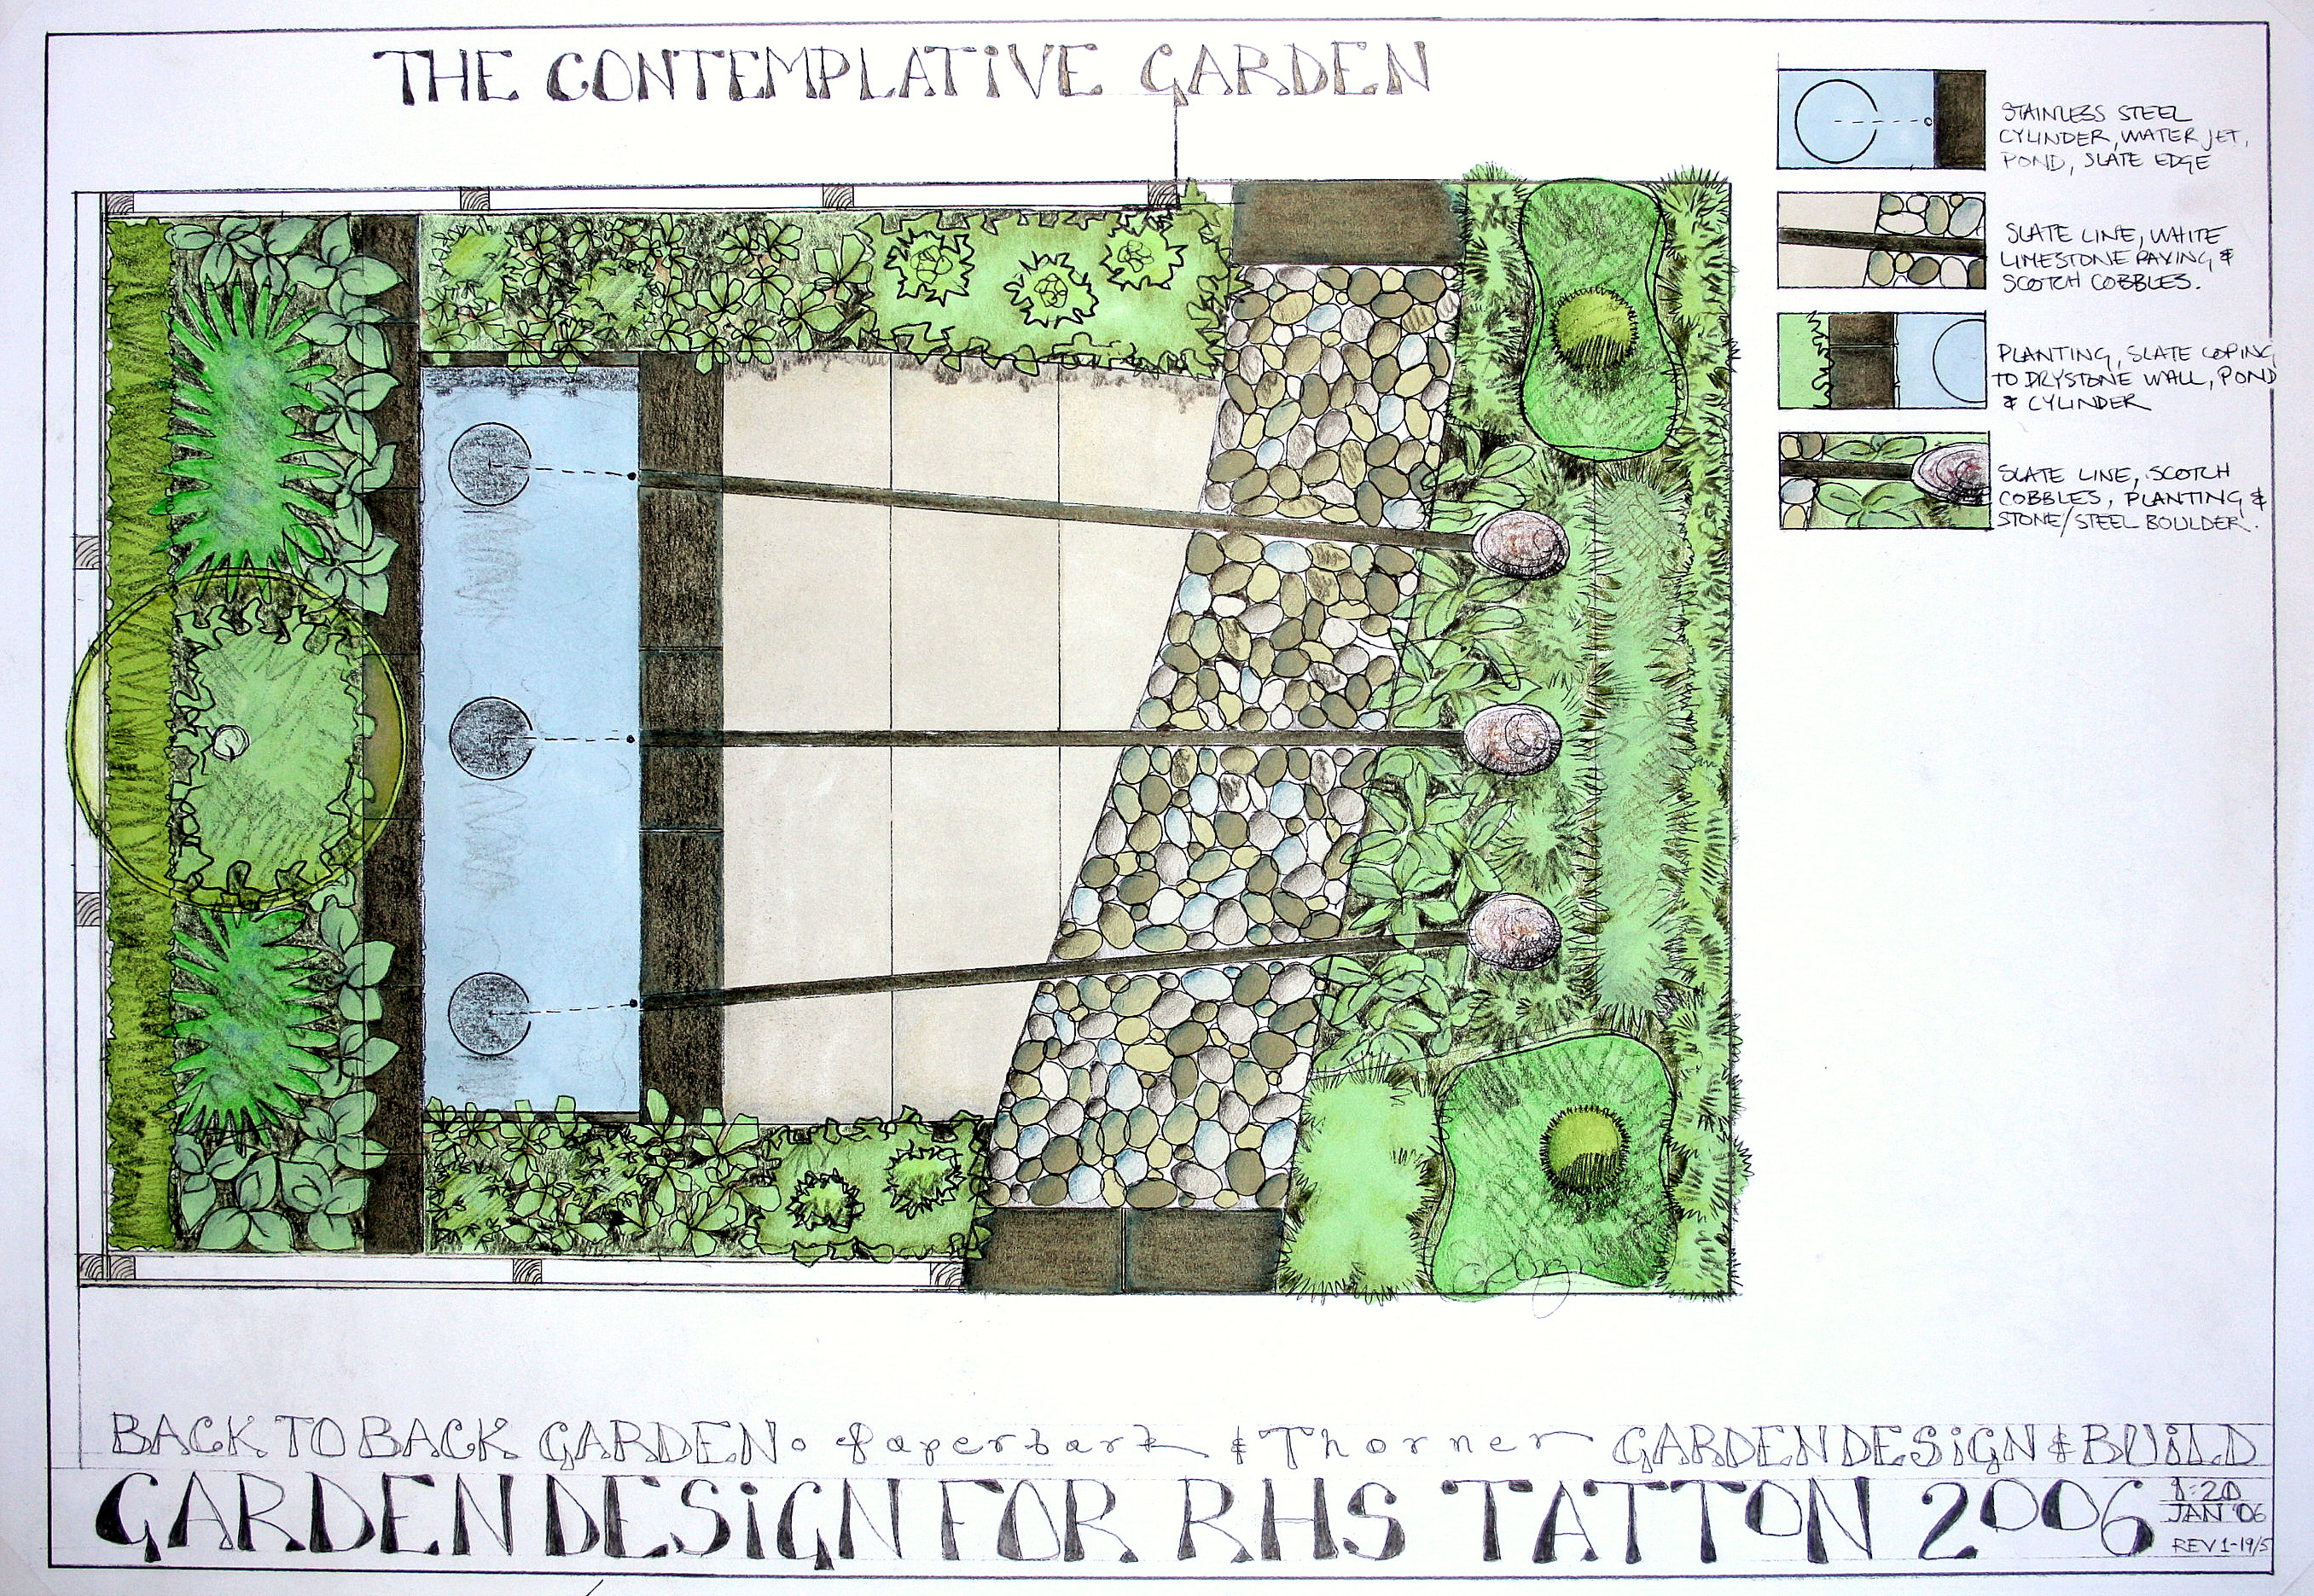 plan for landscaping garden at Tatton RHS show by Paperbark